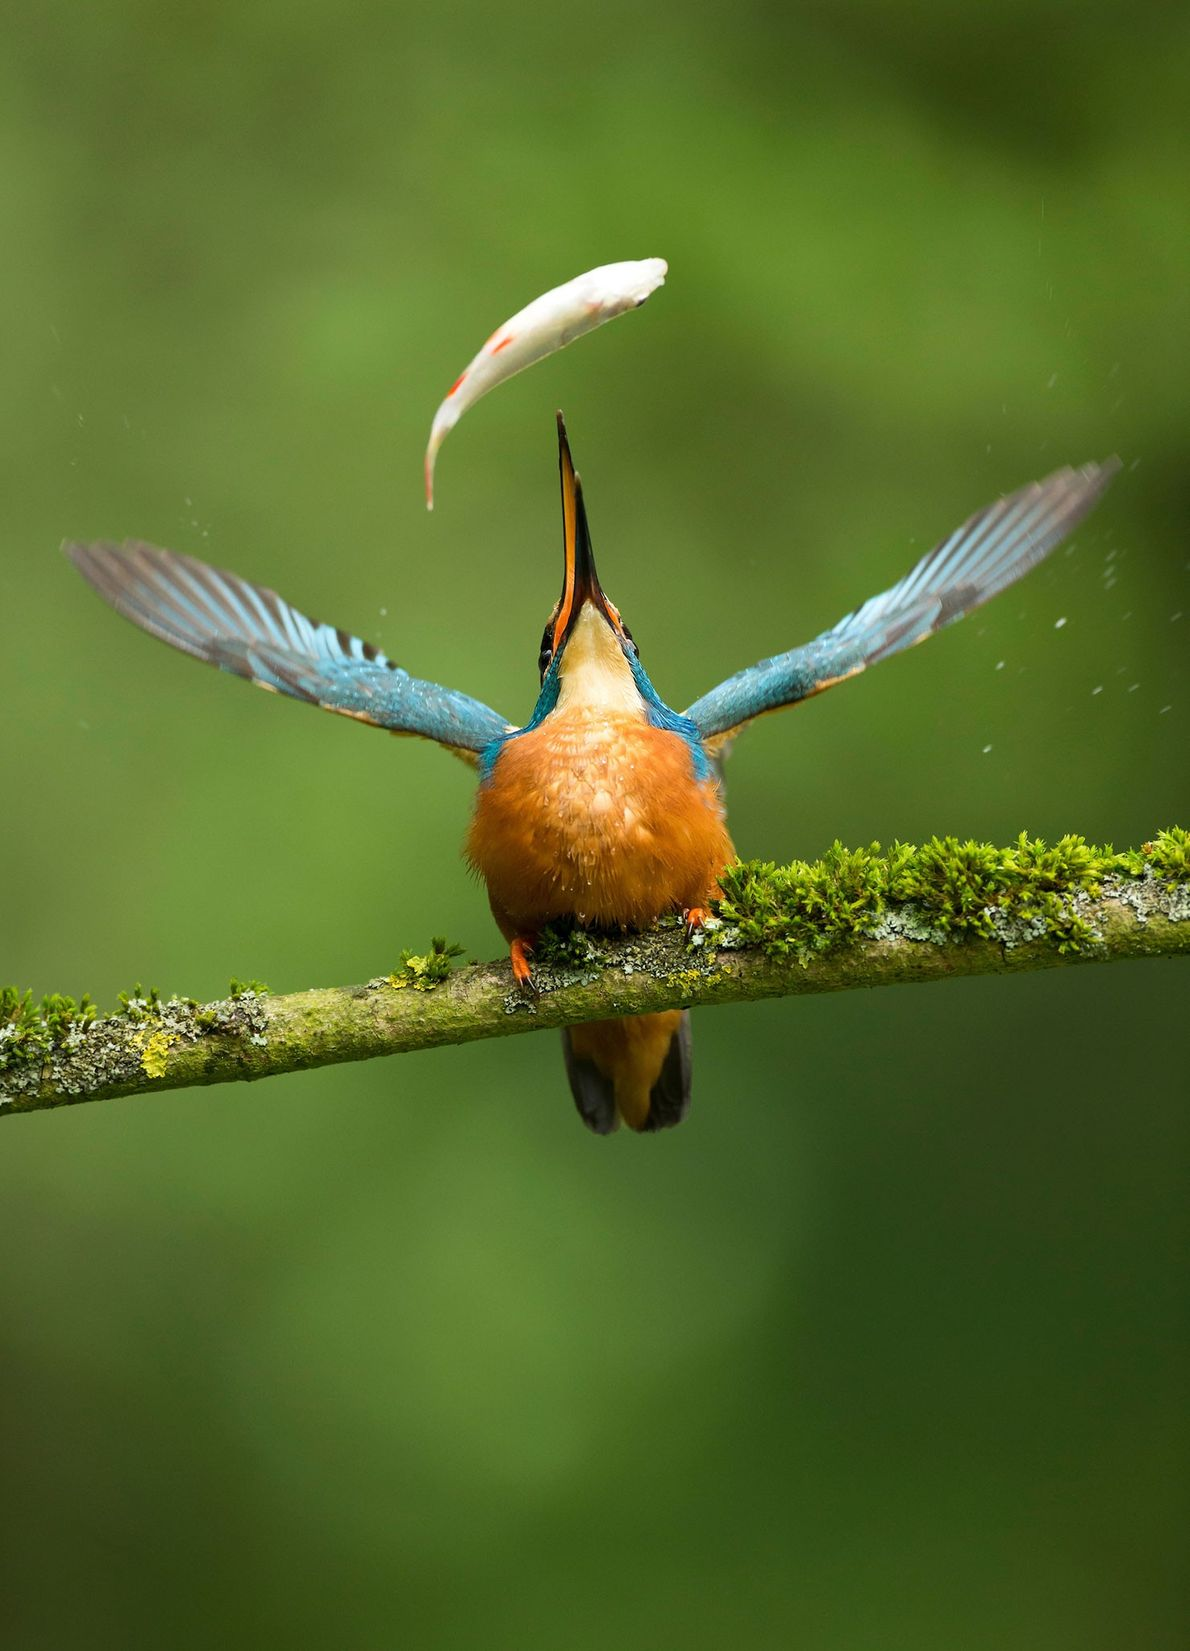 The Nature Photographers Ltd people's choice award went to this image of a kingfisher (Alcedo atthis) ...